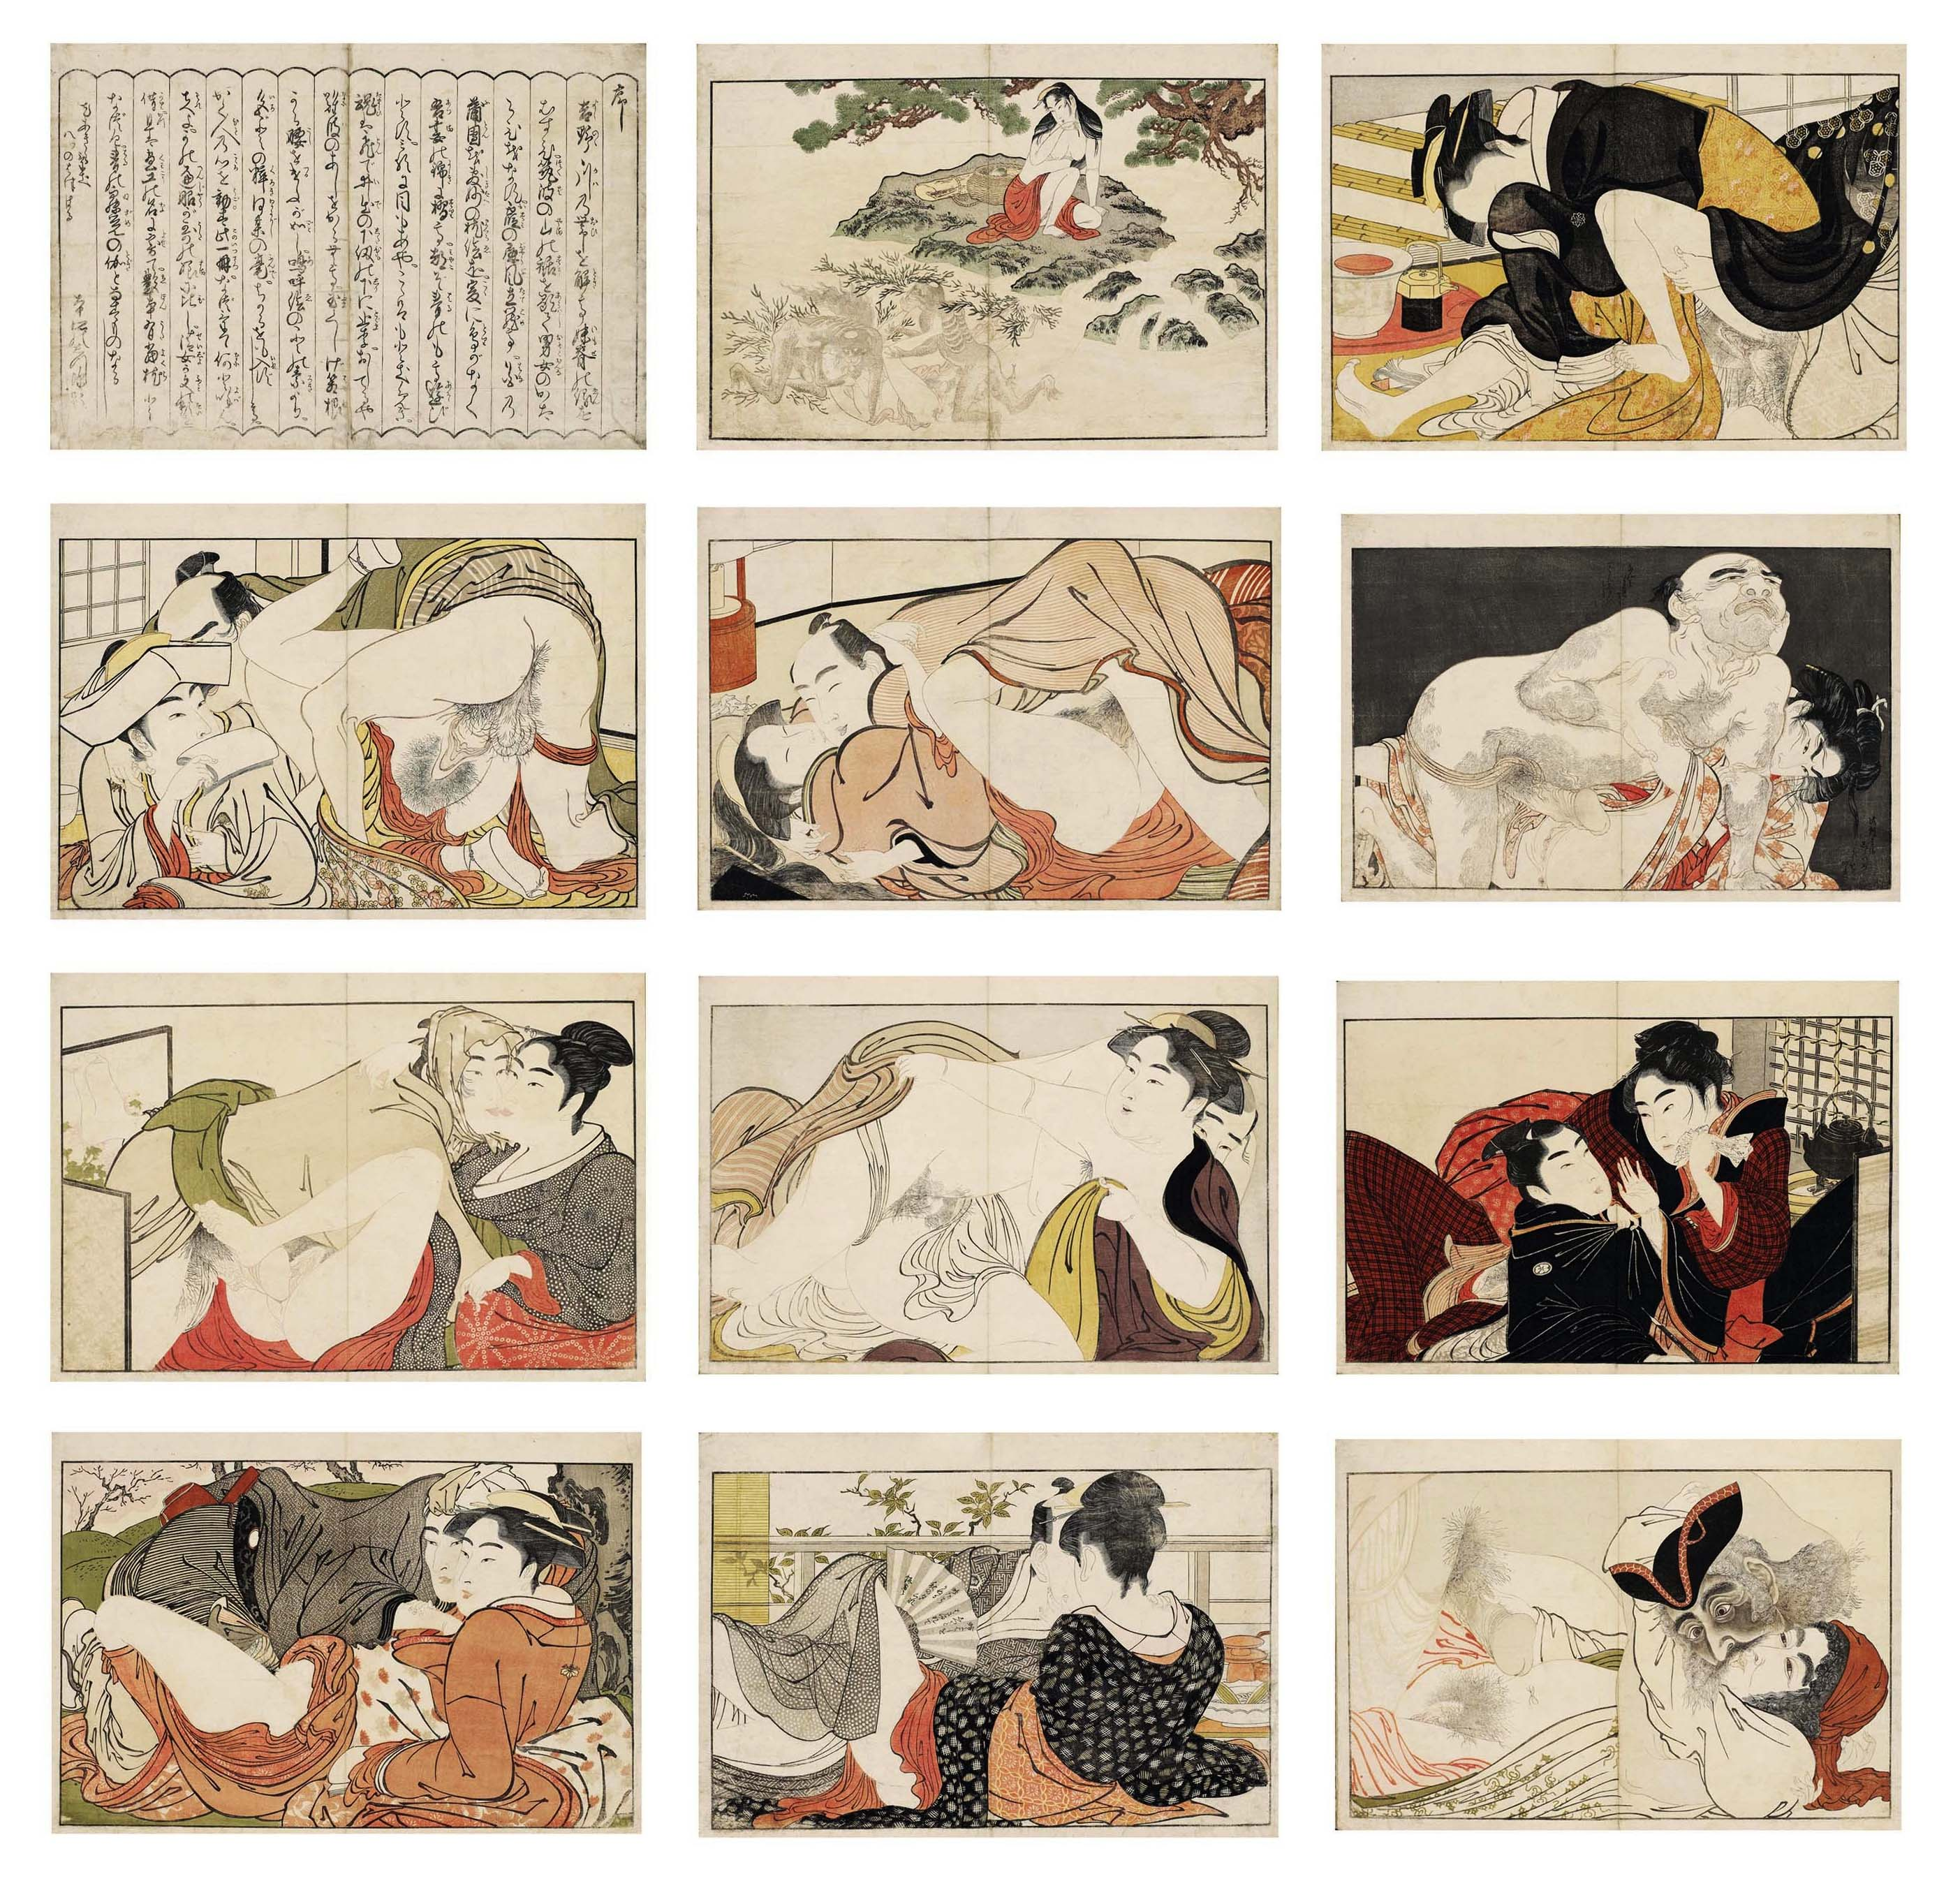 Kitagawa Utamaro, Utamakuru, Poem of the Pillow, Gedicht der Kissen. Ukiyo-e Shunga, 1788